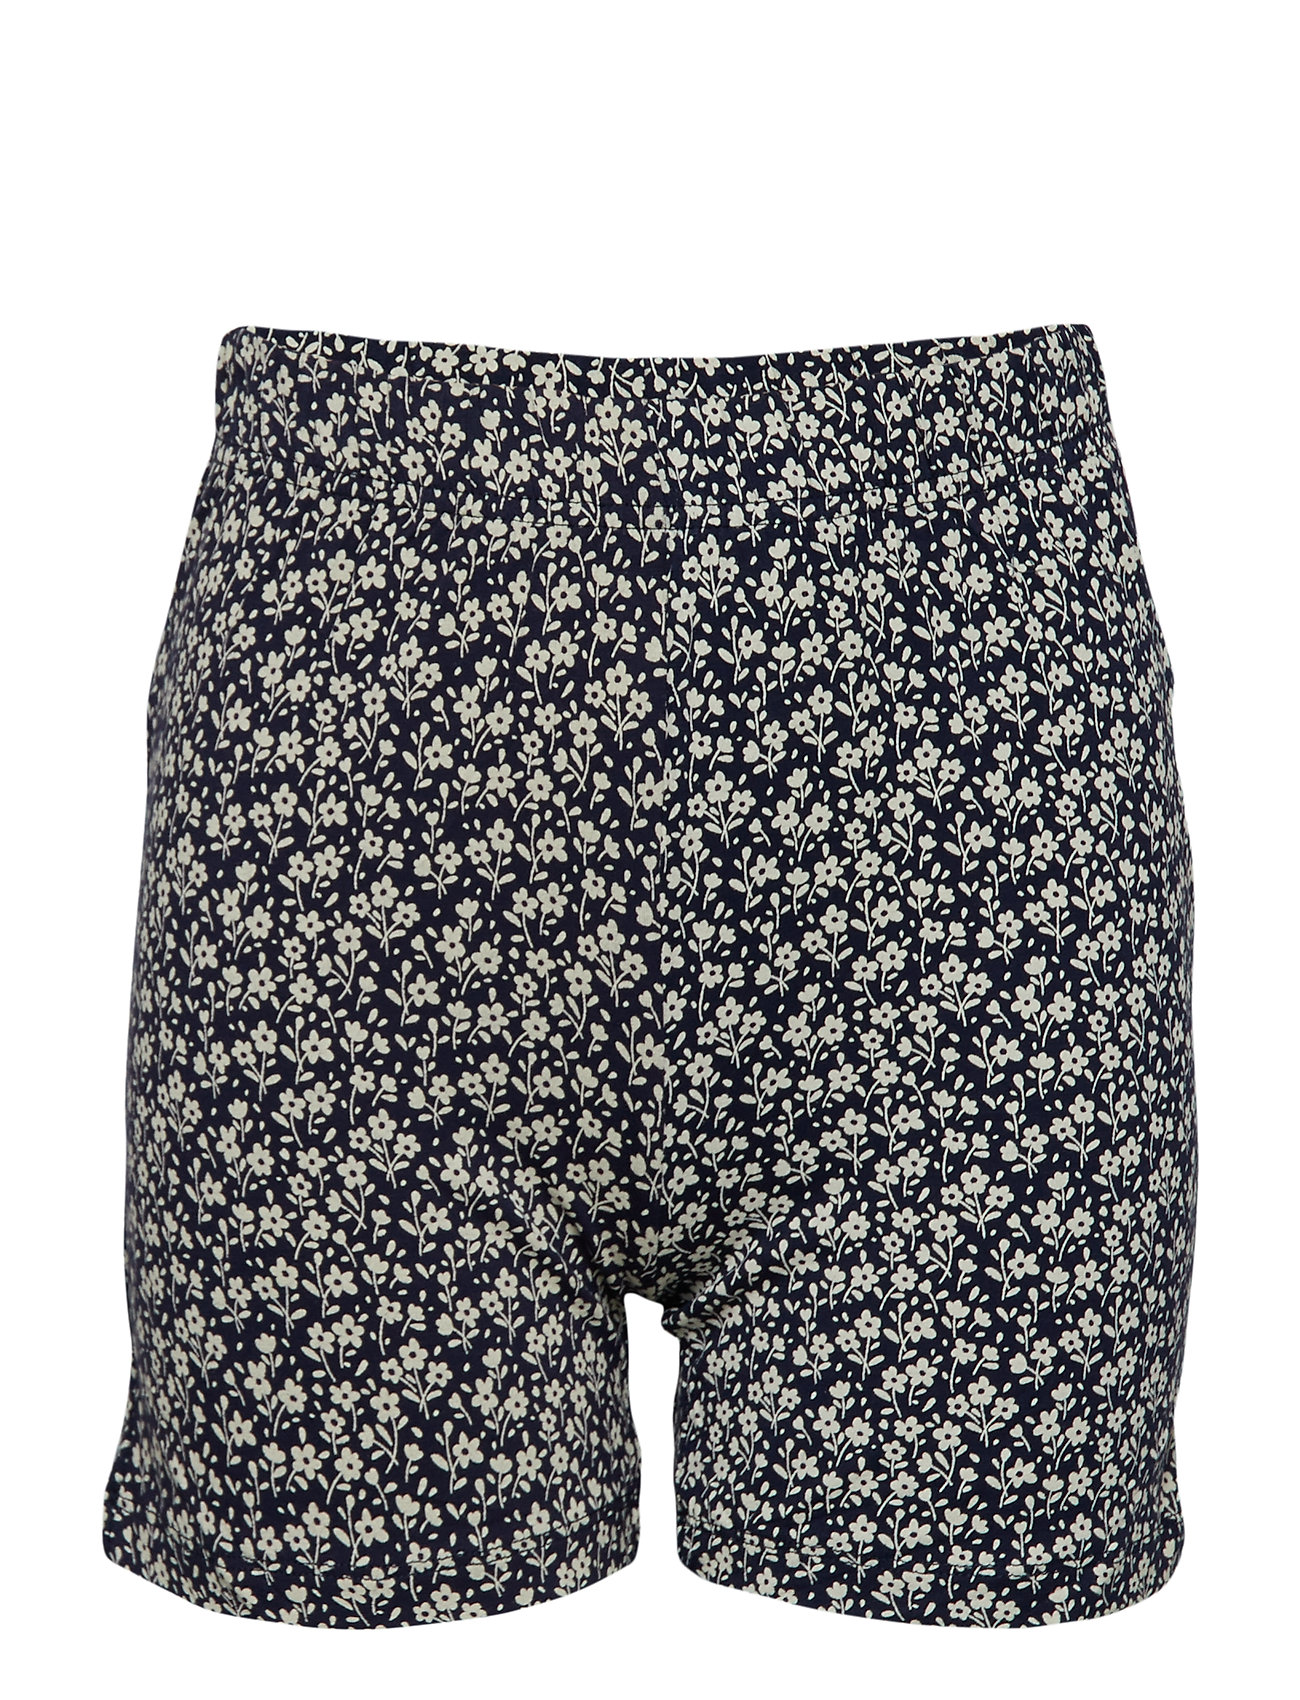 The New KARLA SHORTS - BLACK IRIS